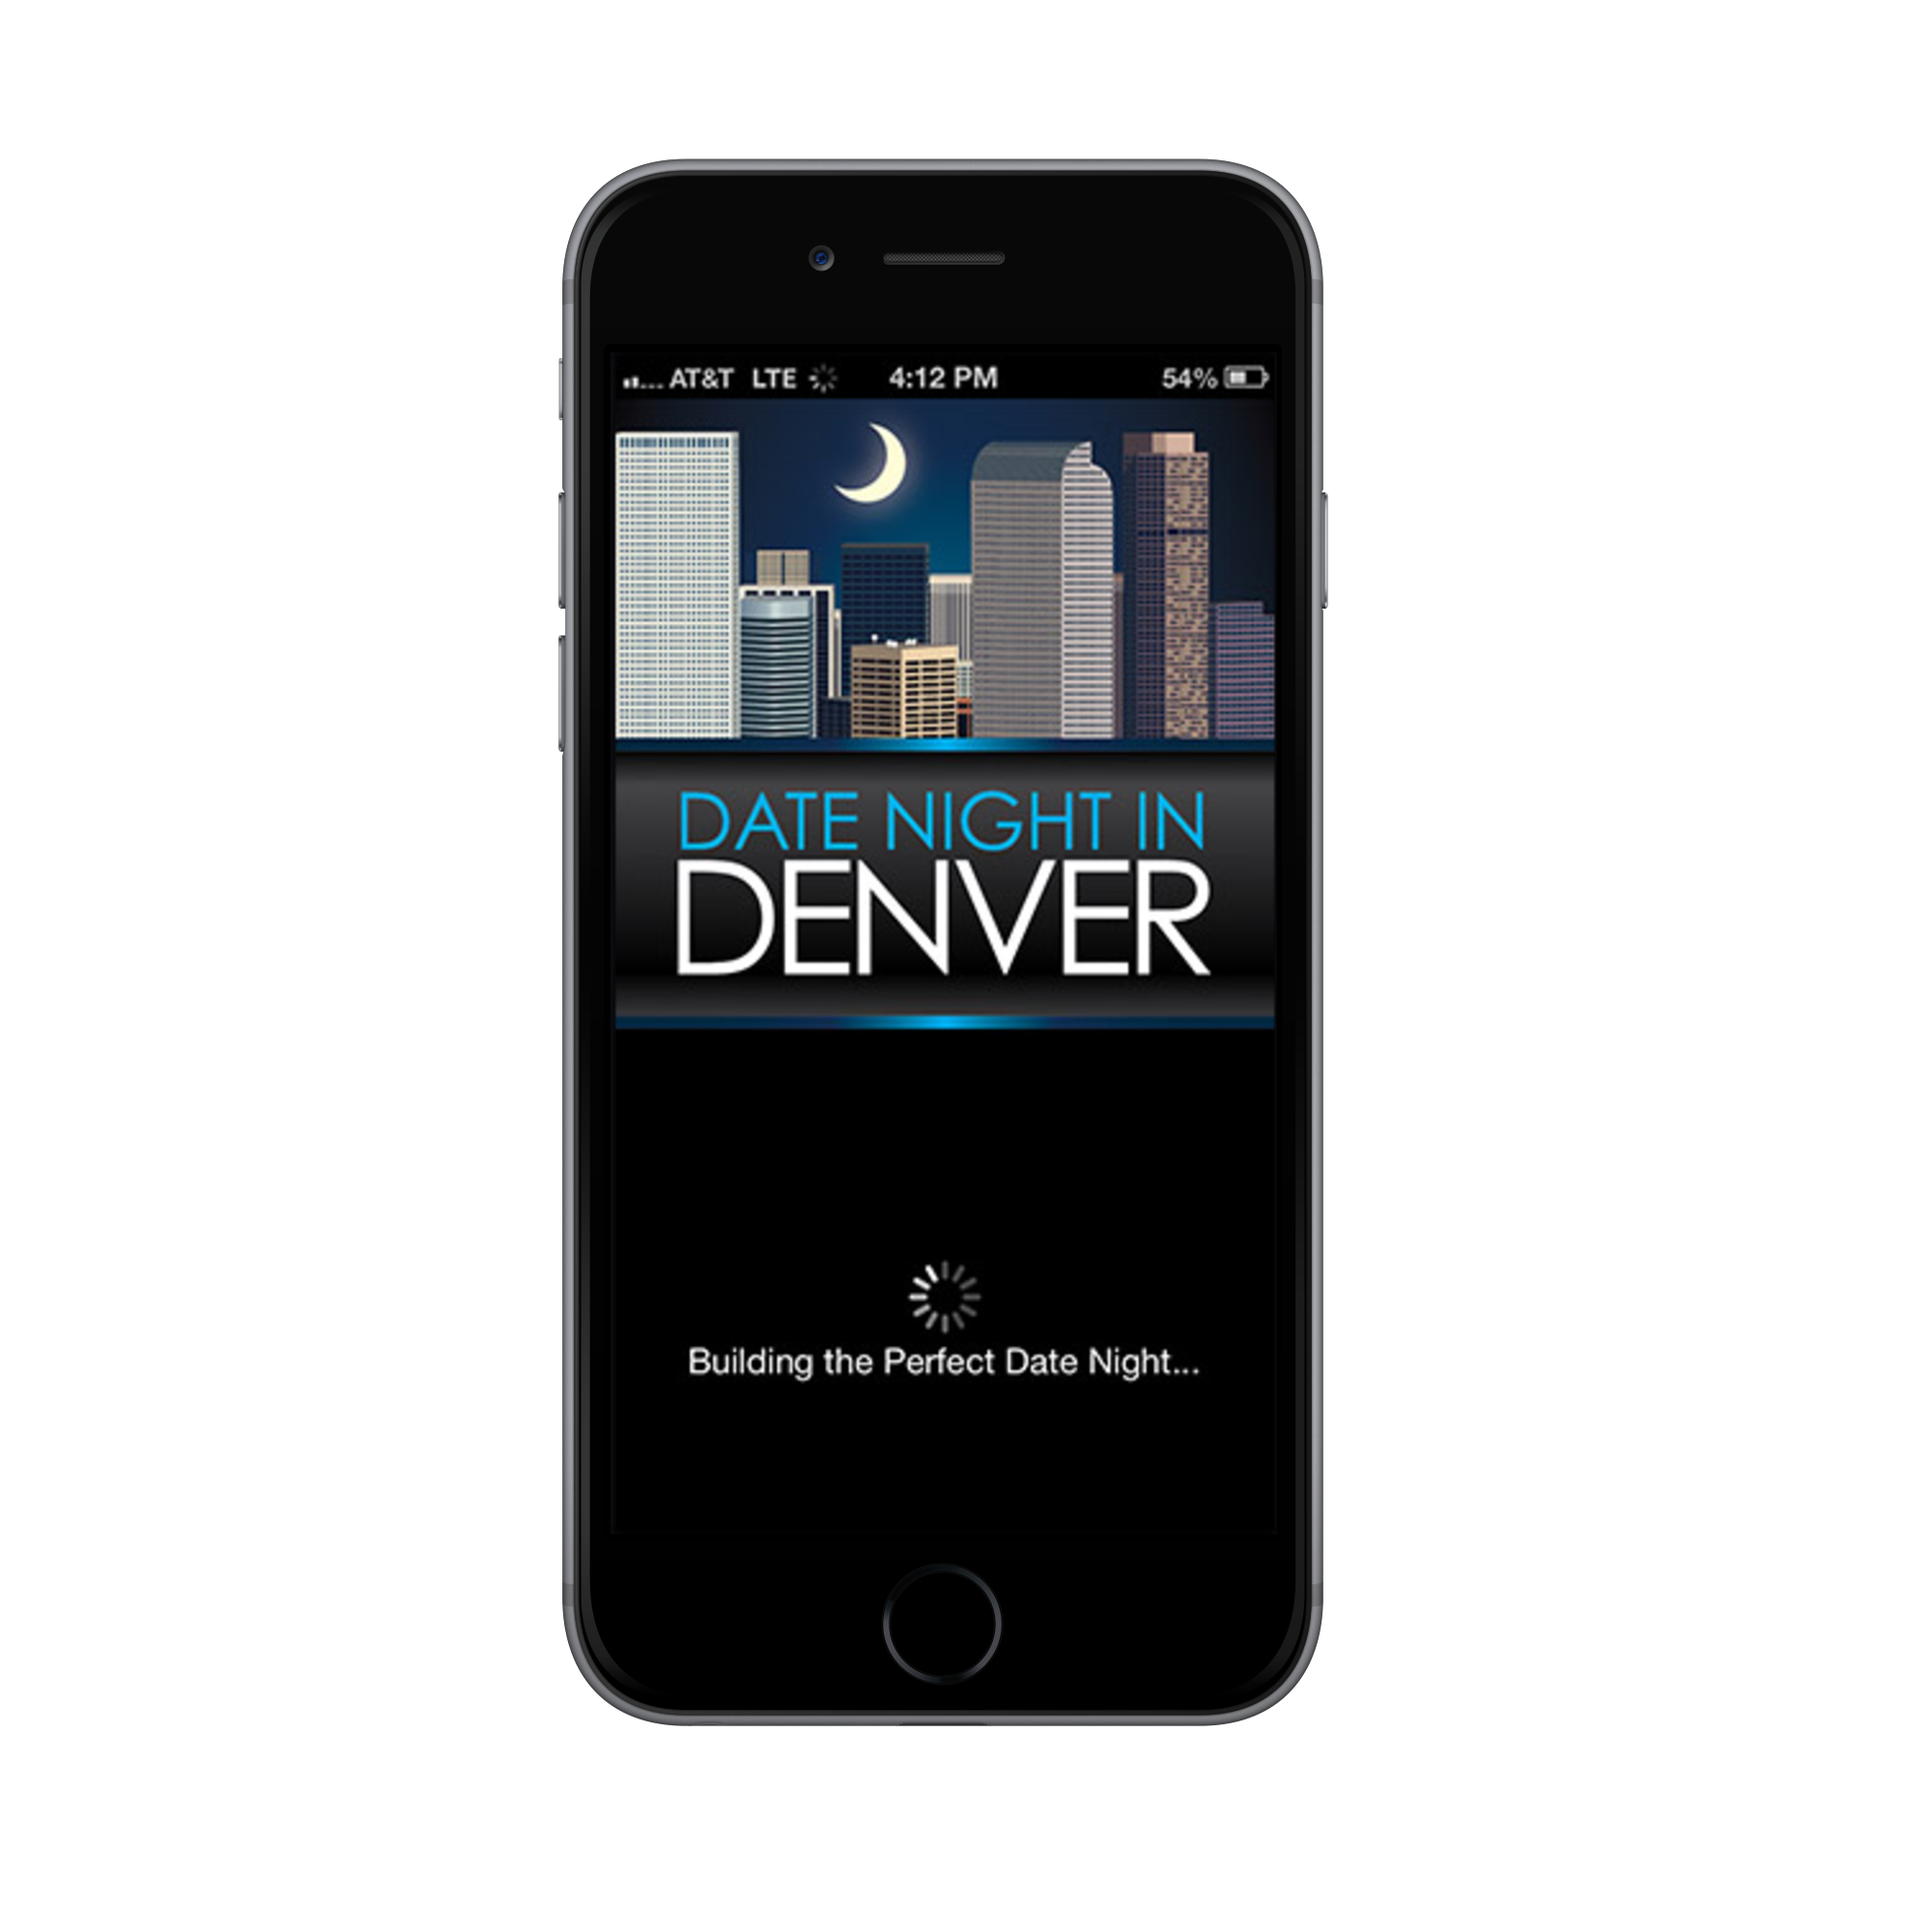 Date Night in Denver App Founder